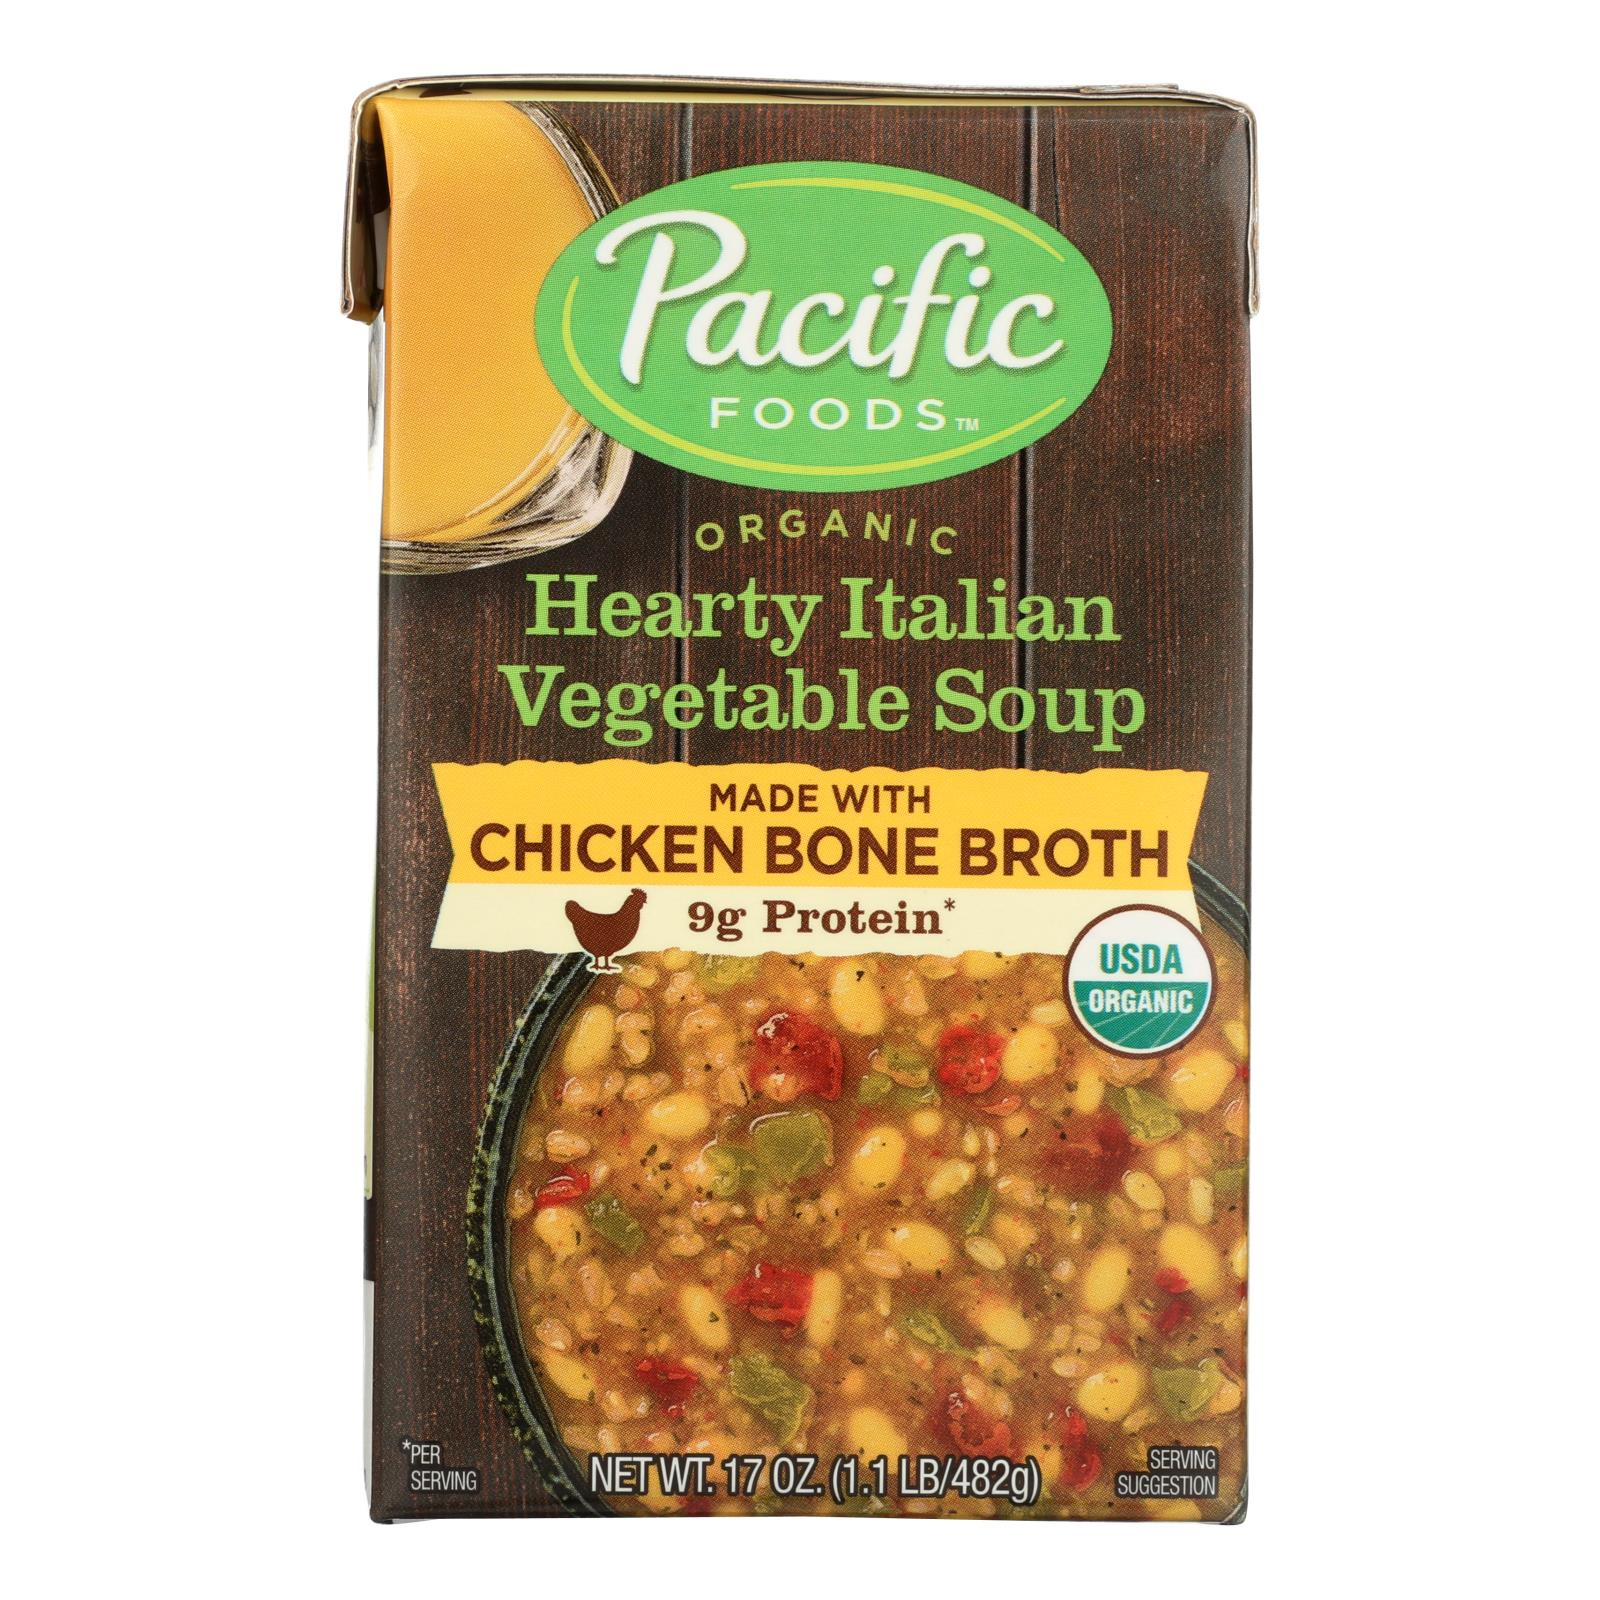 Pacific Natural Foods Organic Hearty Italian Vegetable Soup Made With Chicken Bone Broth - Case of 12 - 17 OZ